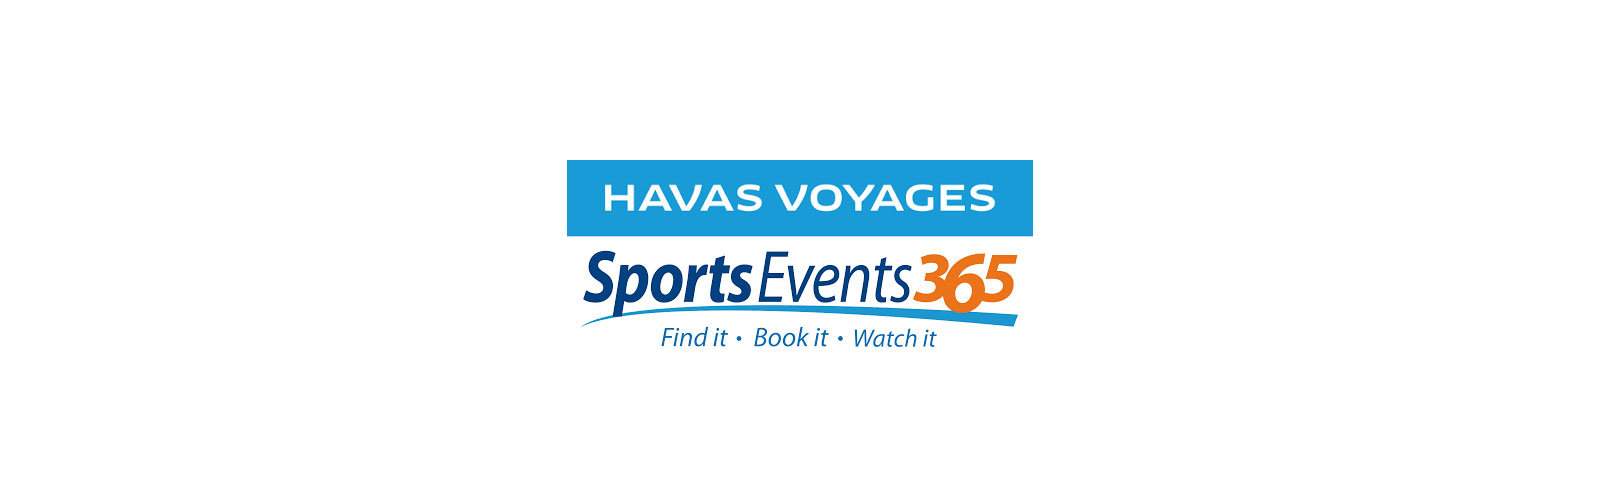 havas-voyages-sports-events-365